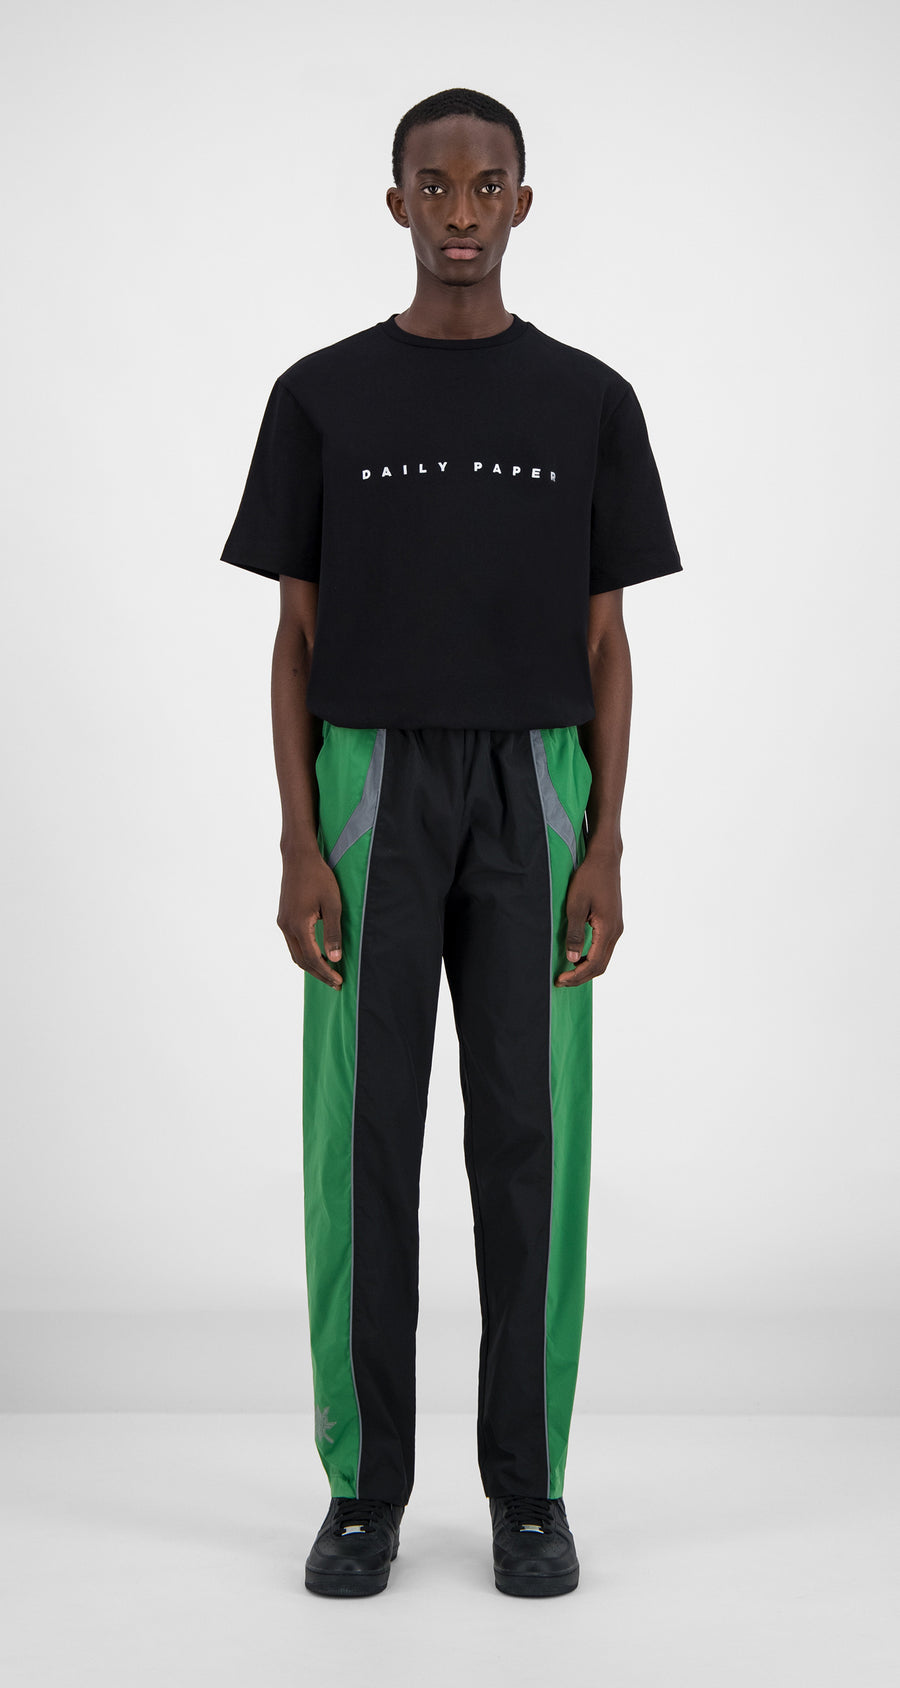 Daily Paper - Daily Paper x STARBOY Green Guka Pants Men Front